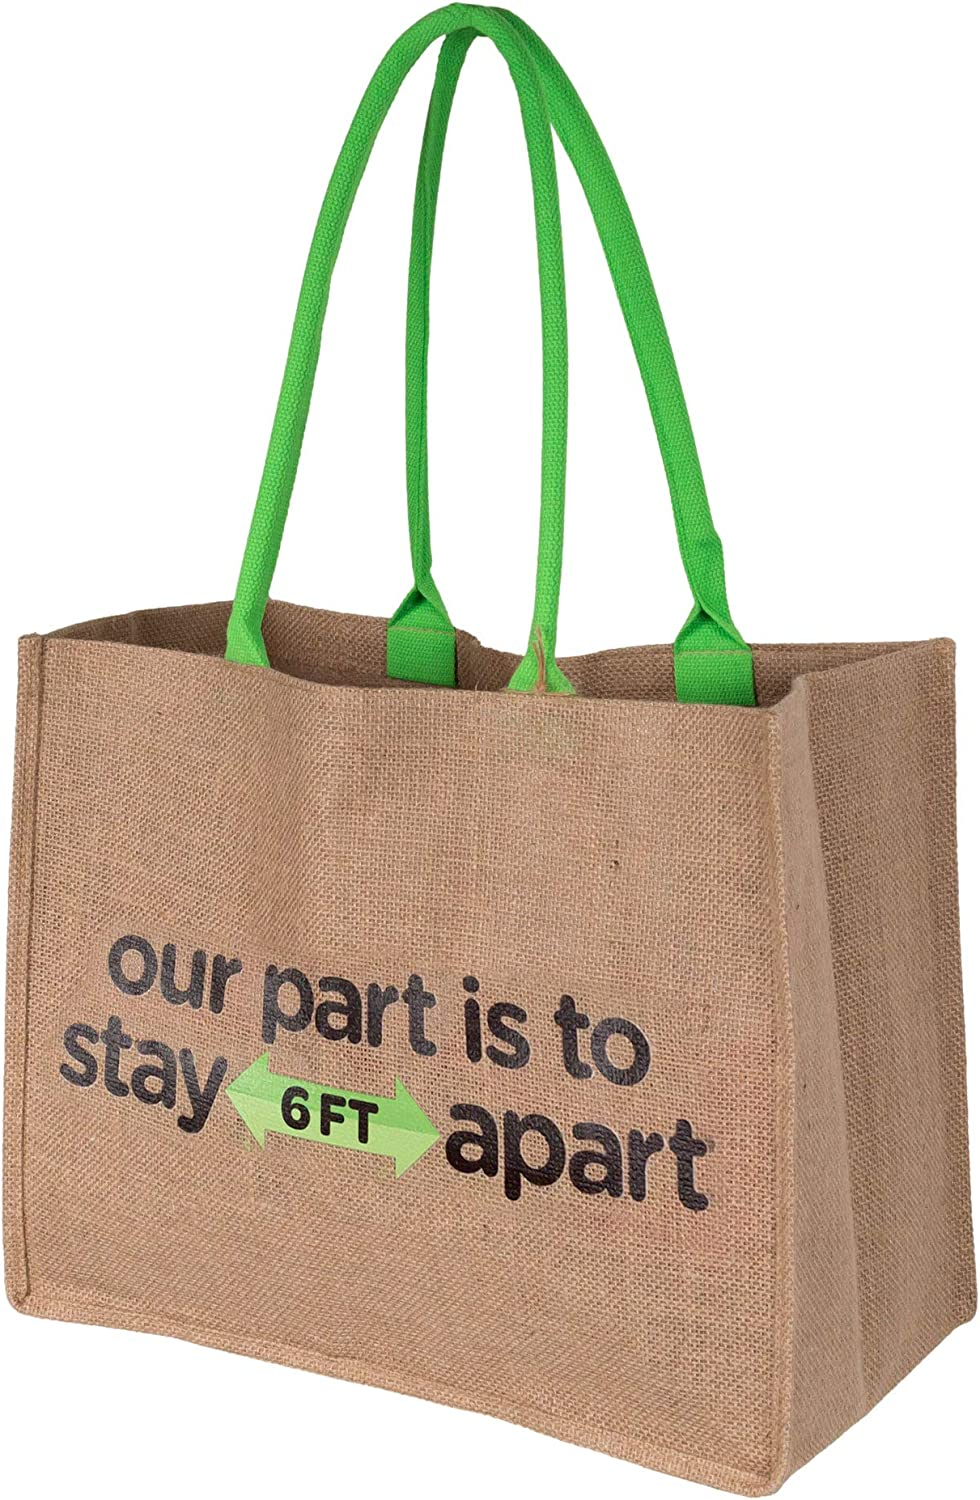 Novelty Gift Shopping Bags – Large Tote Bag – 13 x 17 x 9 Inches – 4 Pockets for Bottles, Phone, Keys – Long Handles – Water-Resistant Lining – Eco-Friendly – Durable – Shopping Bag, Beach Tote, Diaper Bag